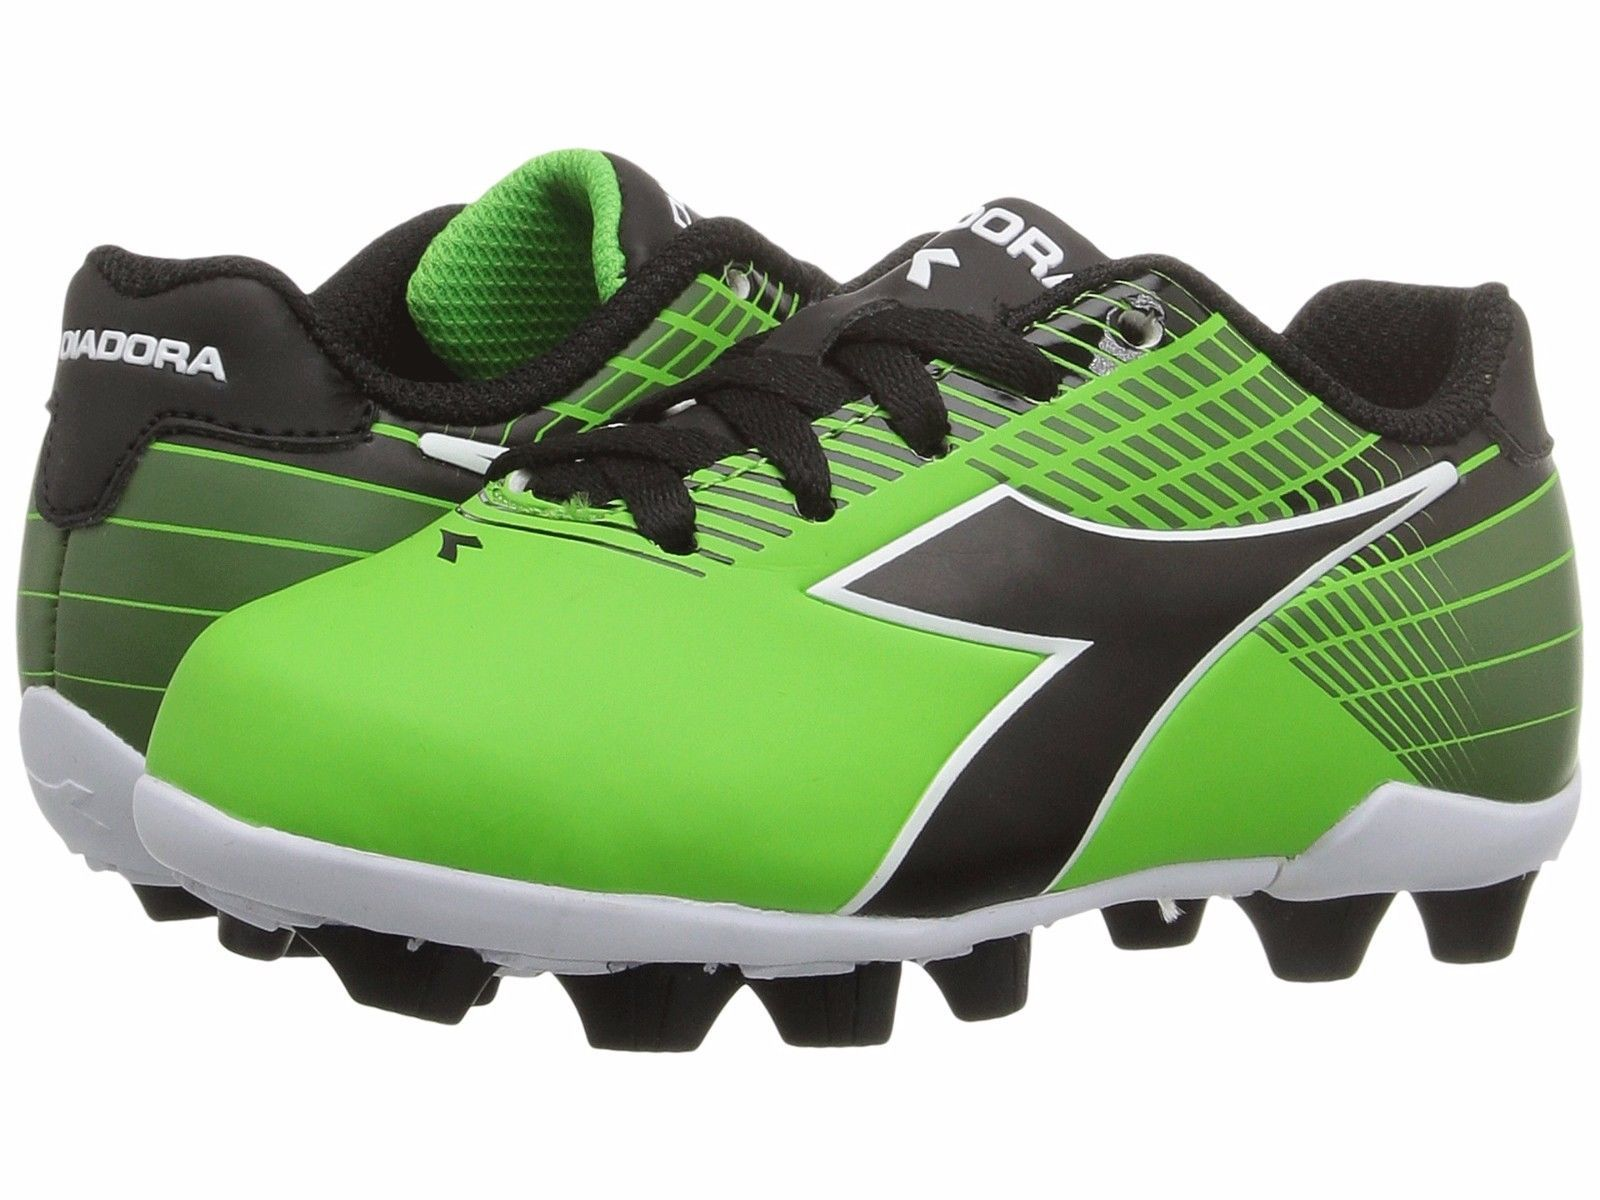 53db131f5e37 S l1600. S l1600. Previous. Diadora Ladro MD JR Soccer Cleats Lime Green /  Black Toddler Kids Youth Sizes